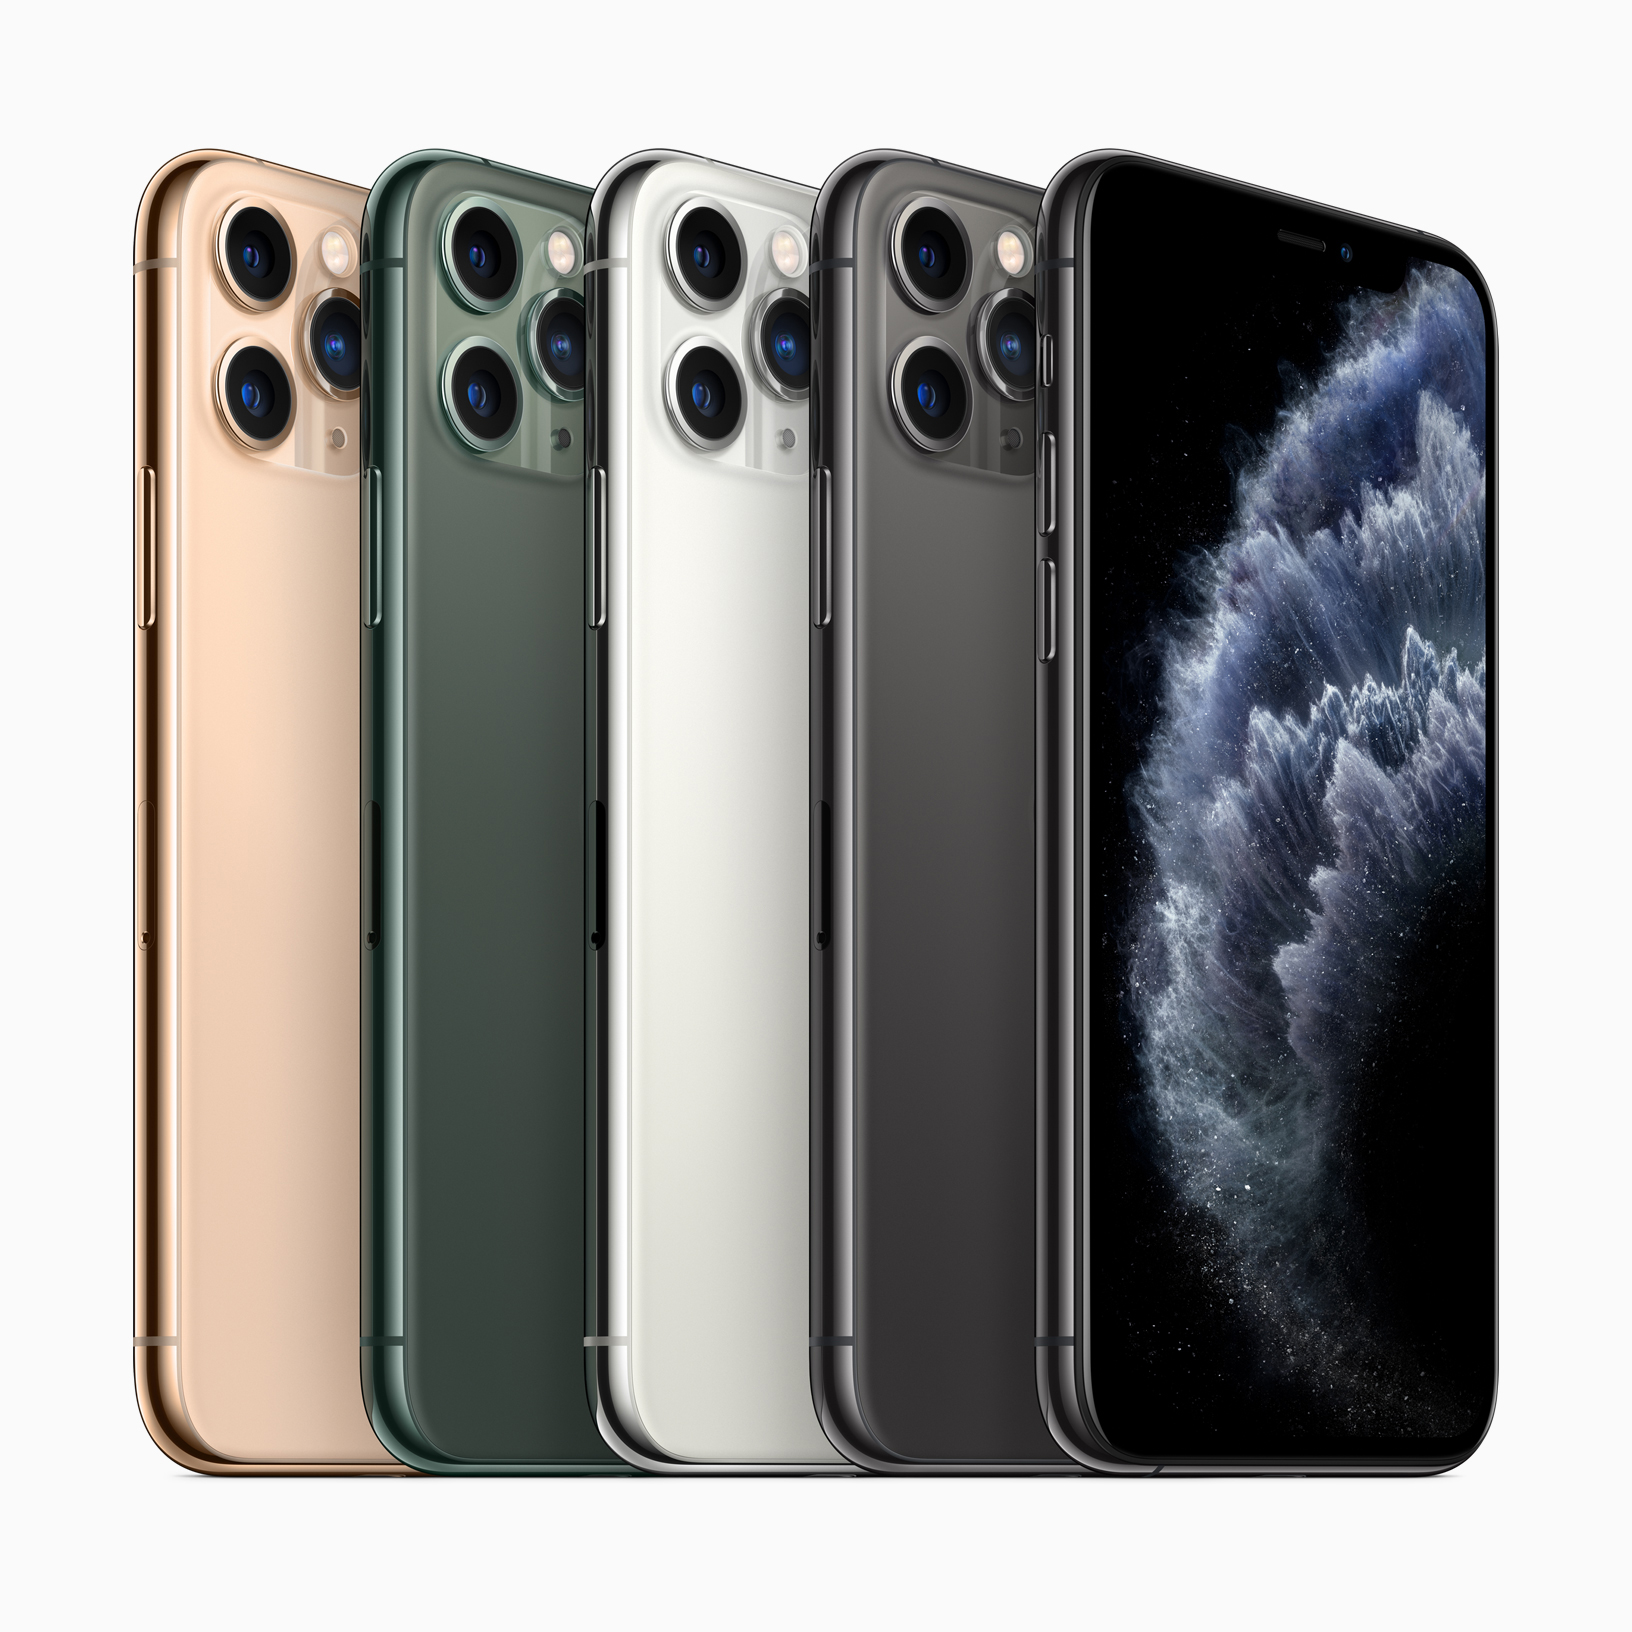 iPhone 11 pricing round-up